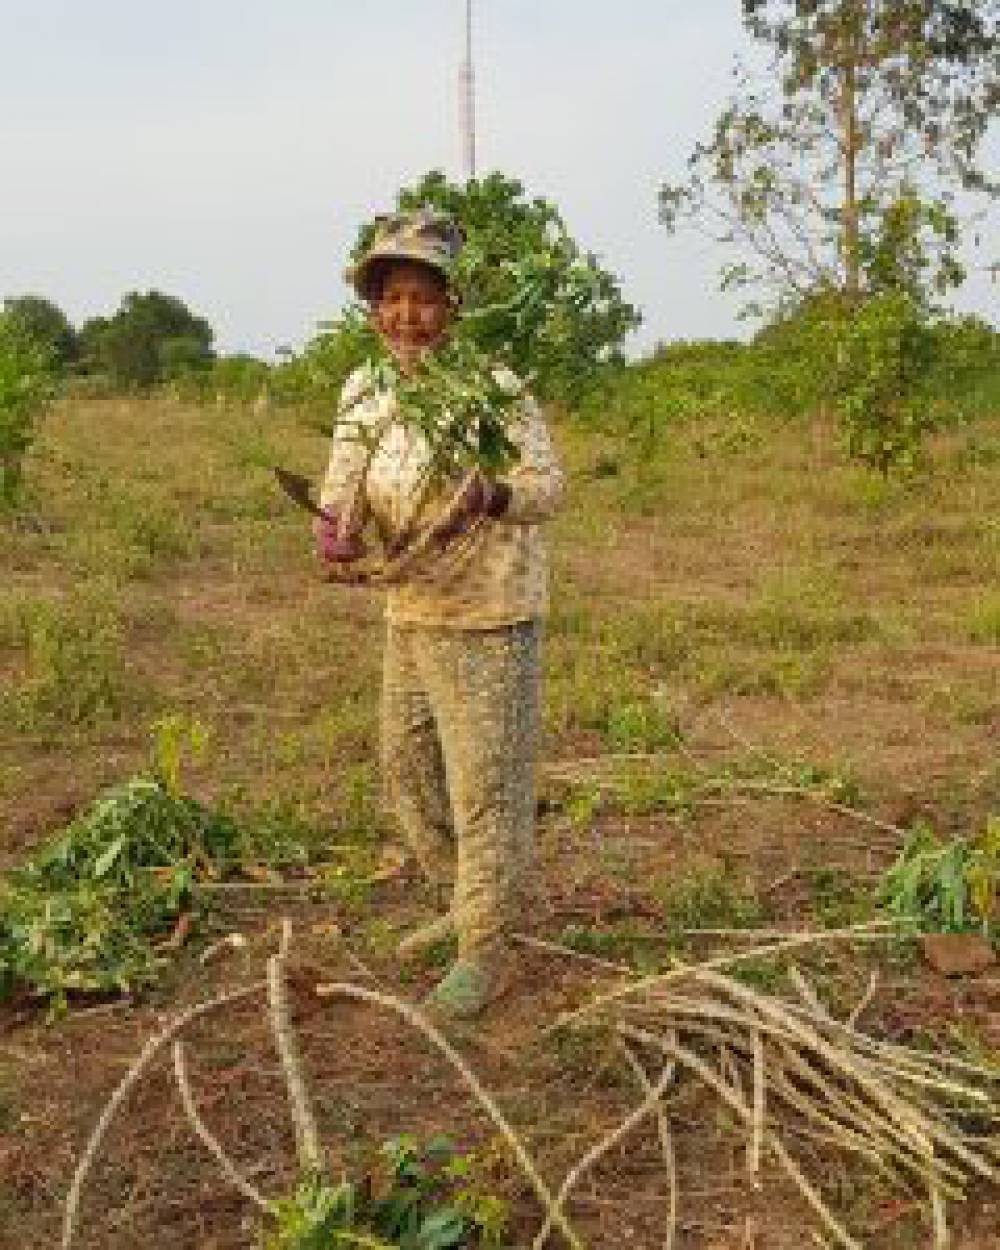 Cassava mosaic disease (CMD) and its effects on Cambodian producers